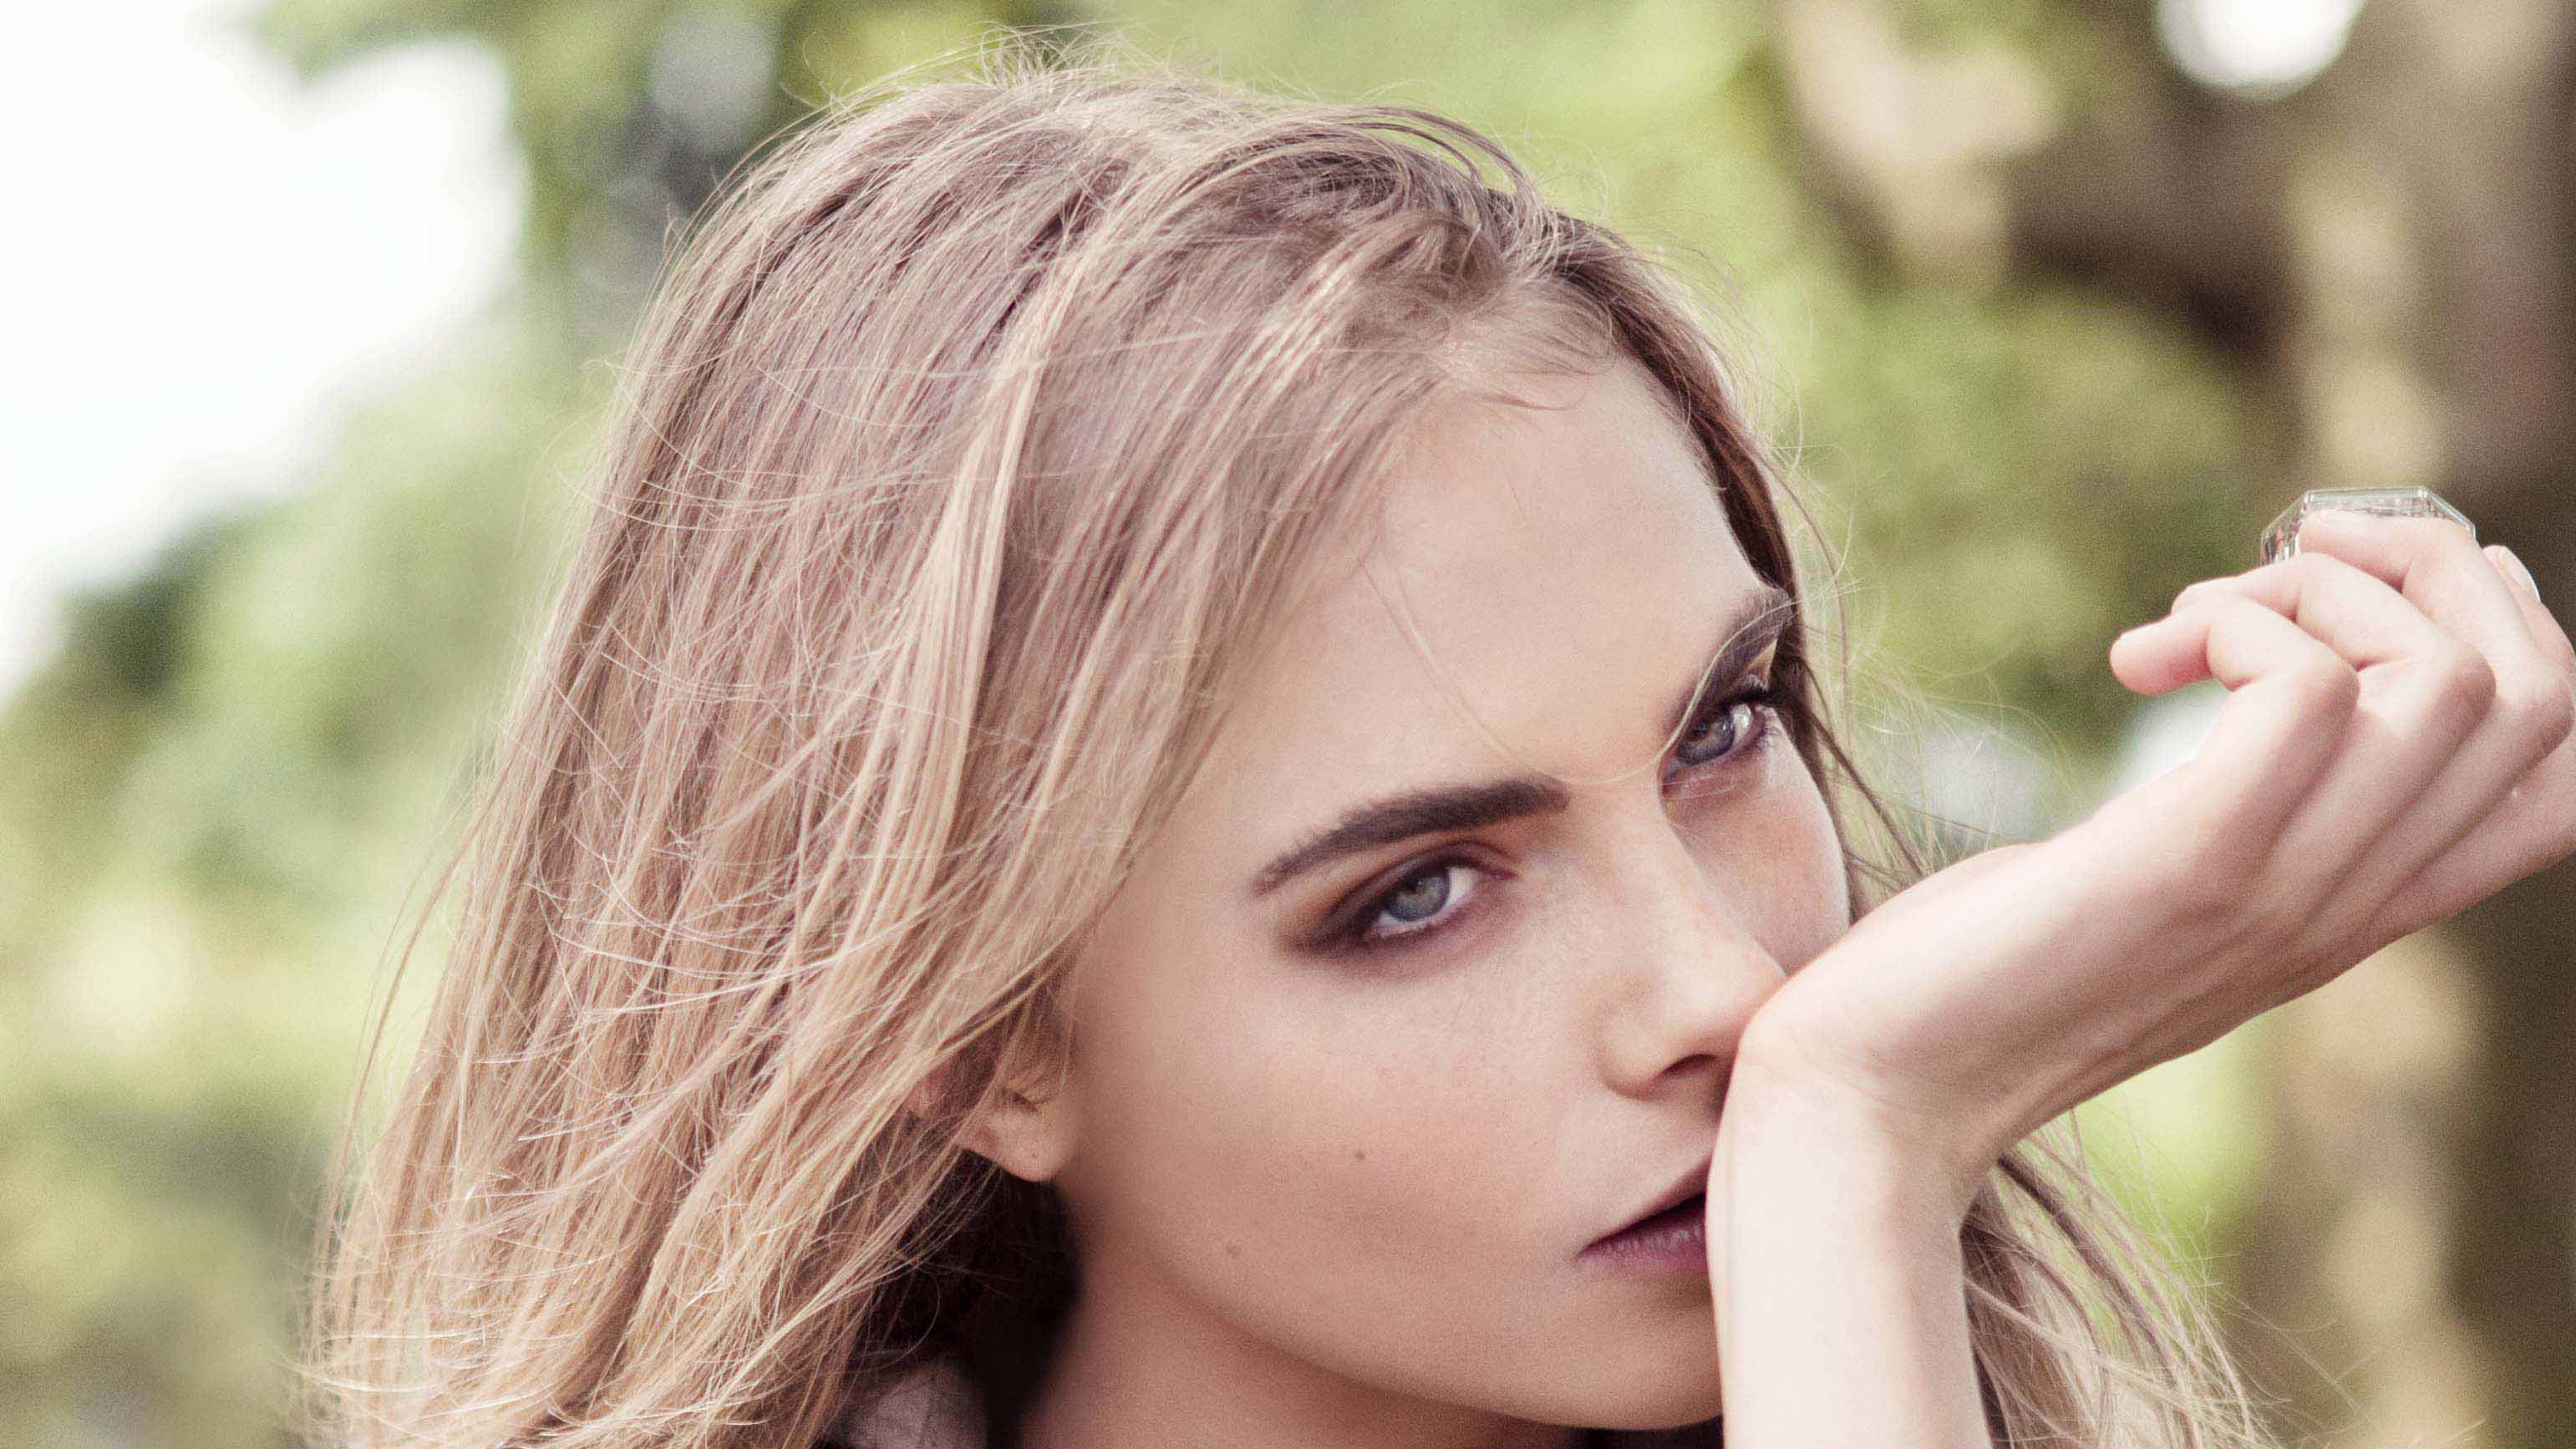 1920x1080 Cara Delevingne 4k 2018 Laptop Full Hd 1080p Hd 4k Wallpapers Images Backgrounds Photos And Pictures